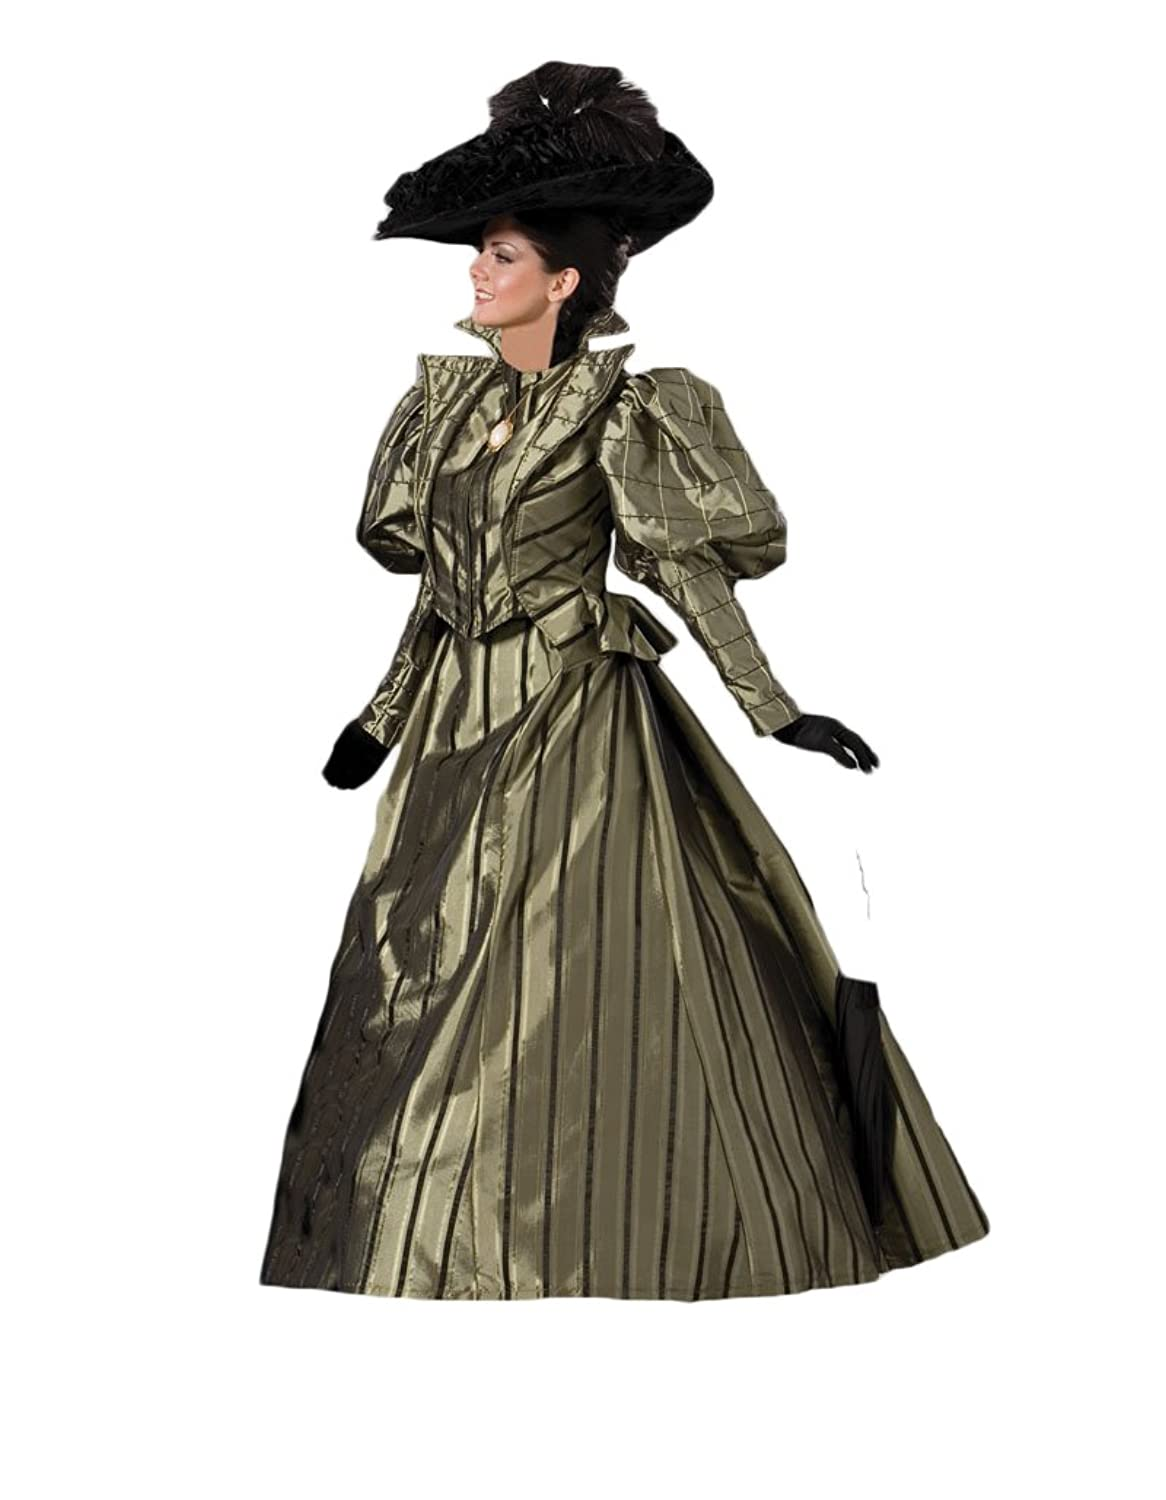 Victorian Costumes: Dresses, Saloon Girls, Southern Belle, Witch Womens Victorian Era Dress Theater Costume $379.99 AT vintagedancer.com